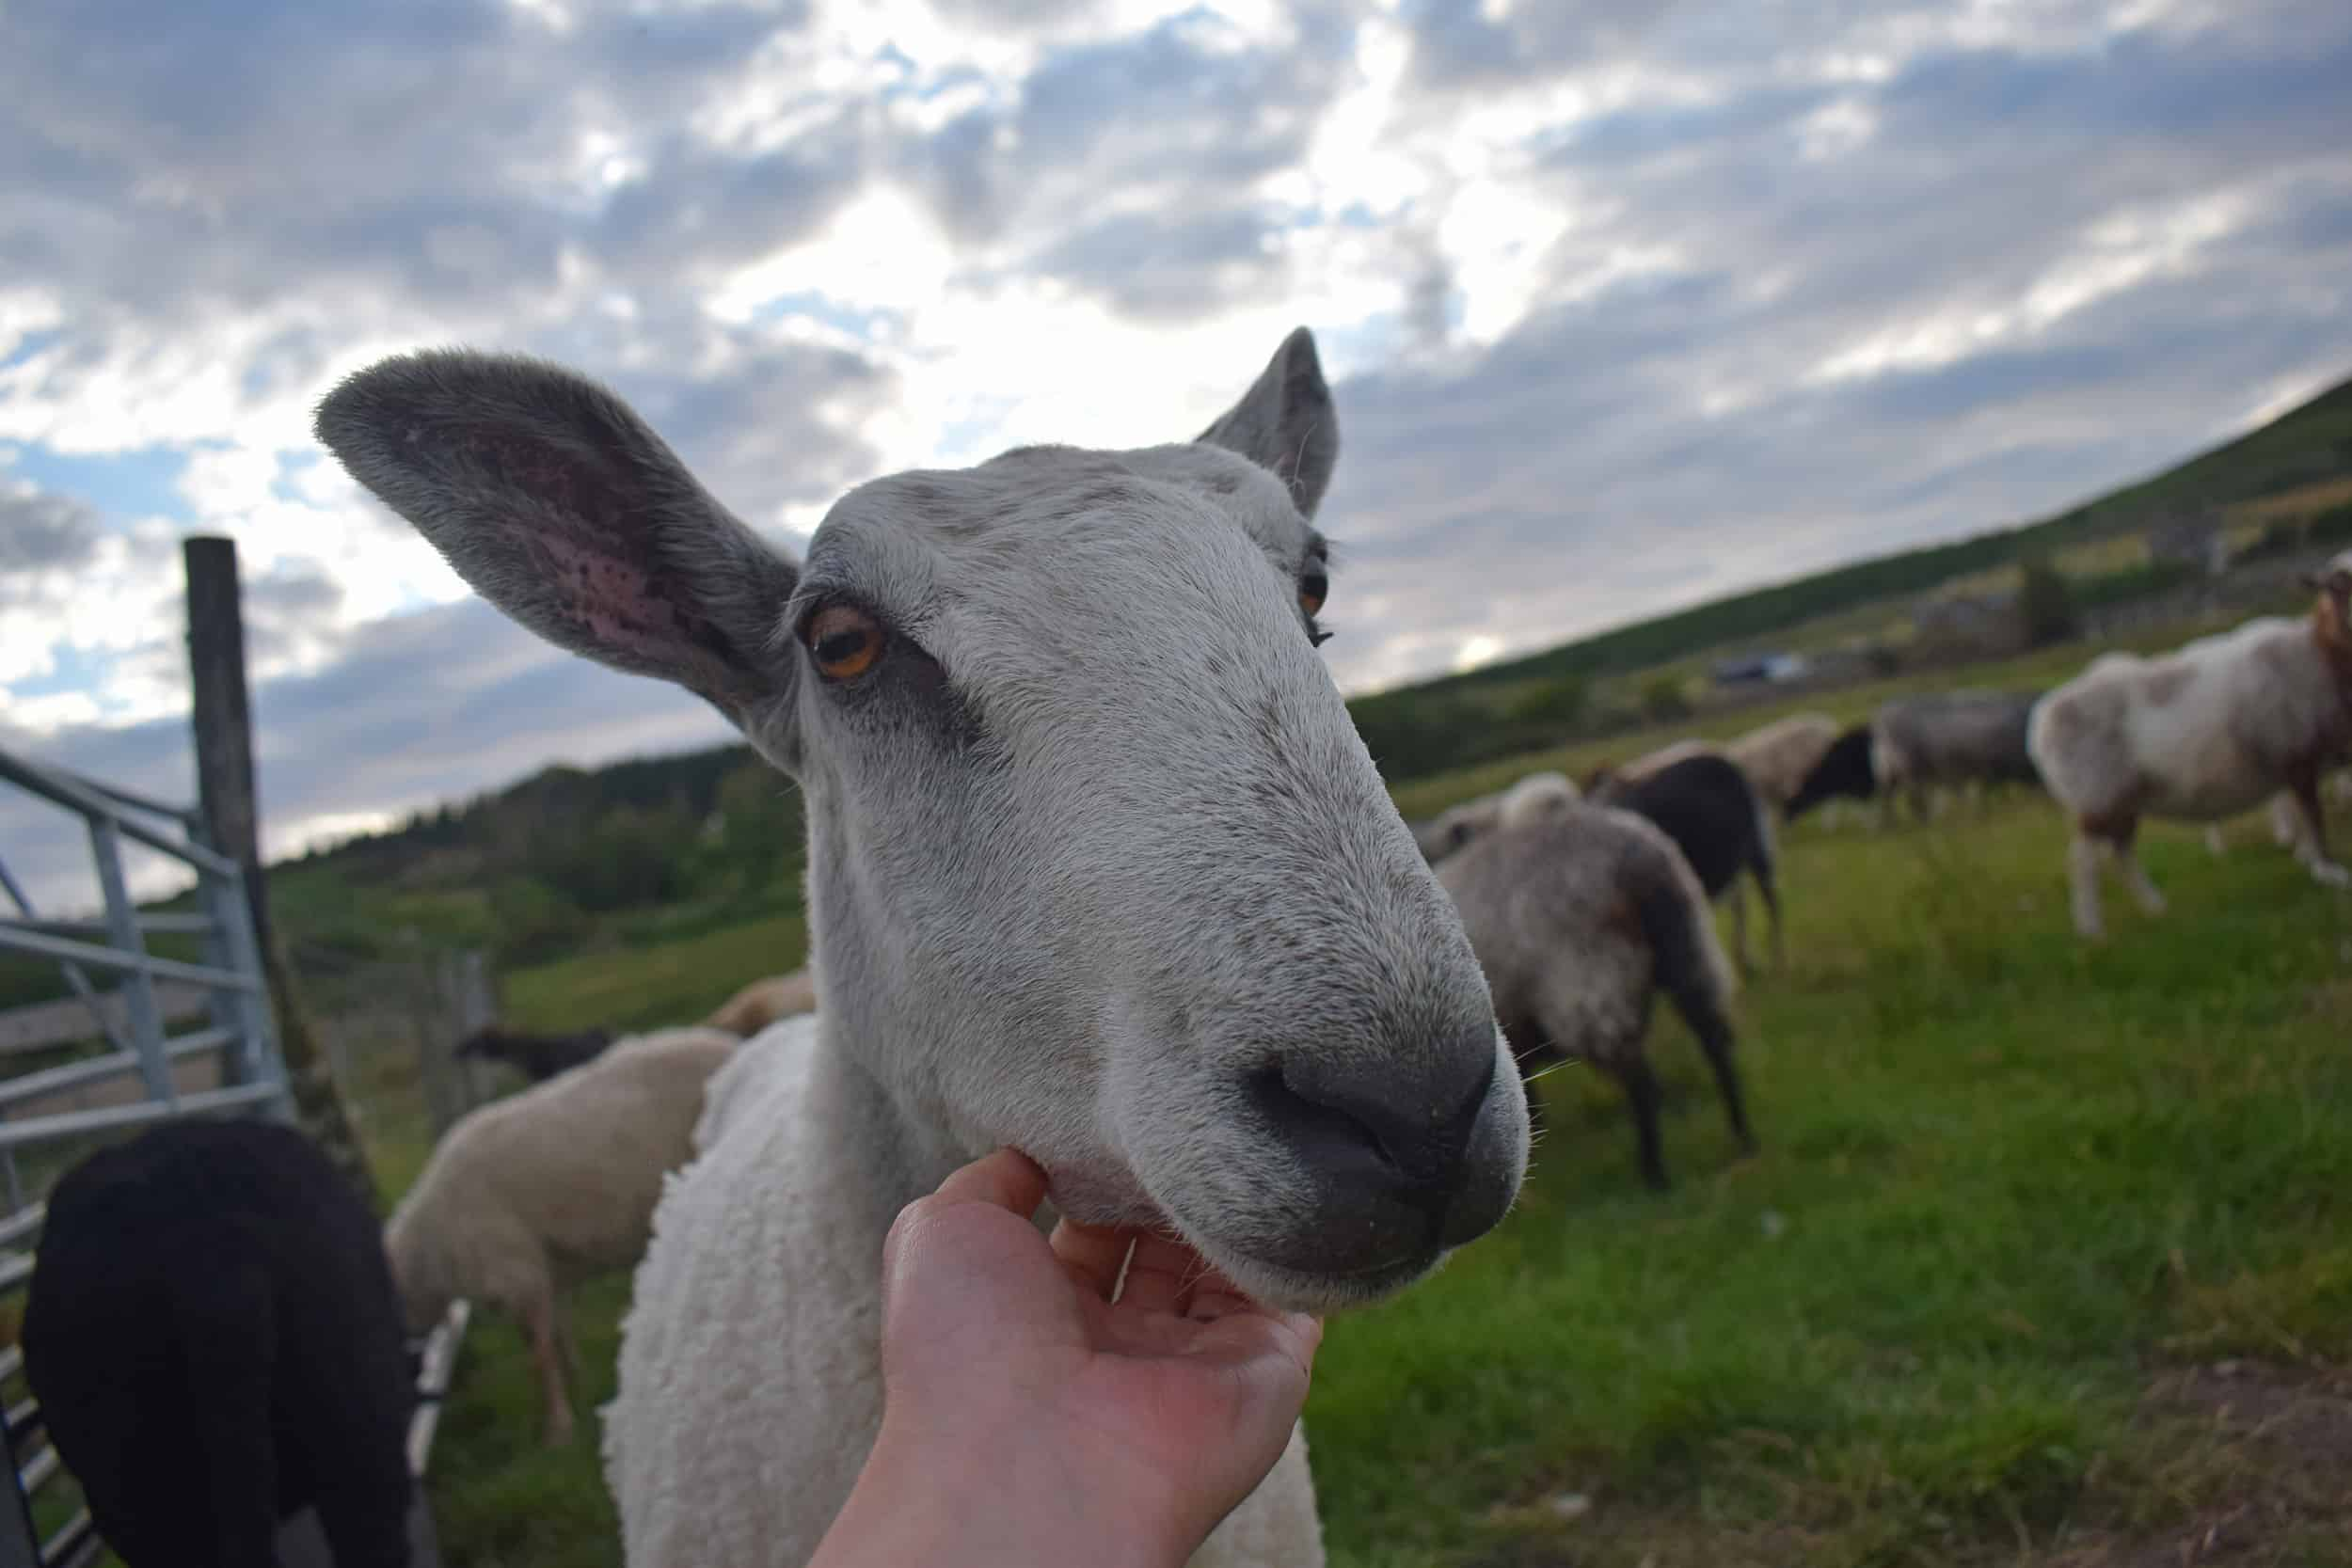 Lily bfl blueface leicester sheep ewe lamb pet bottle yearling shearling